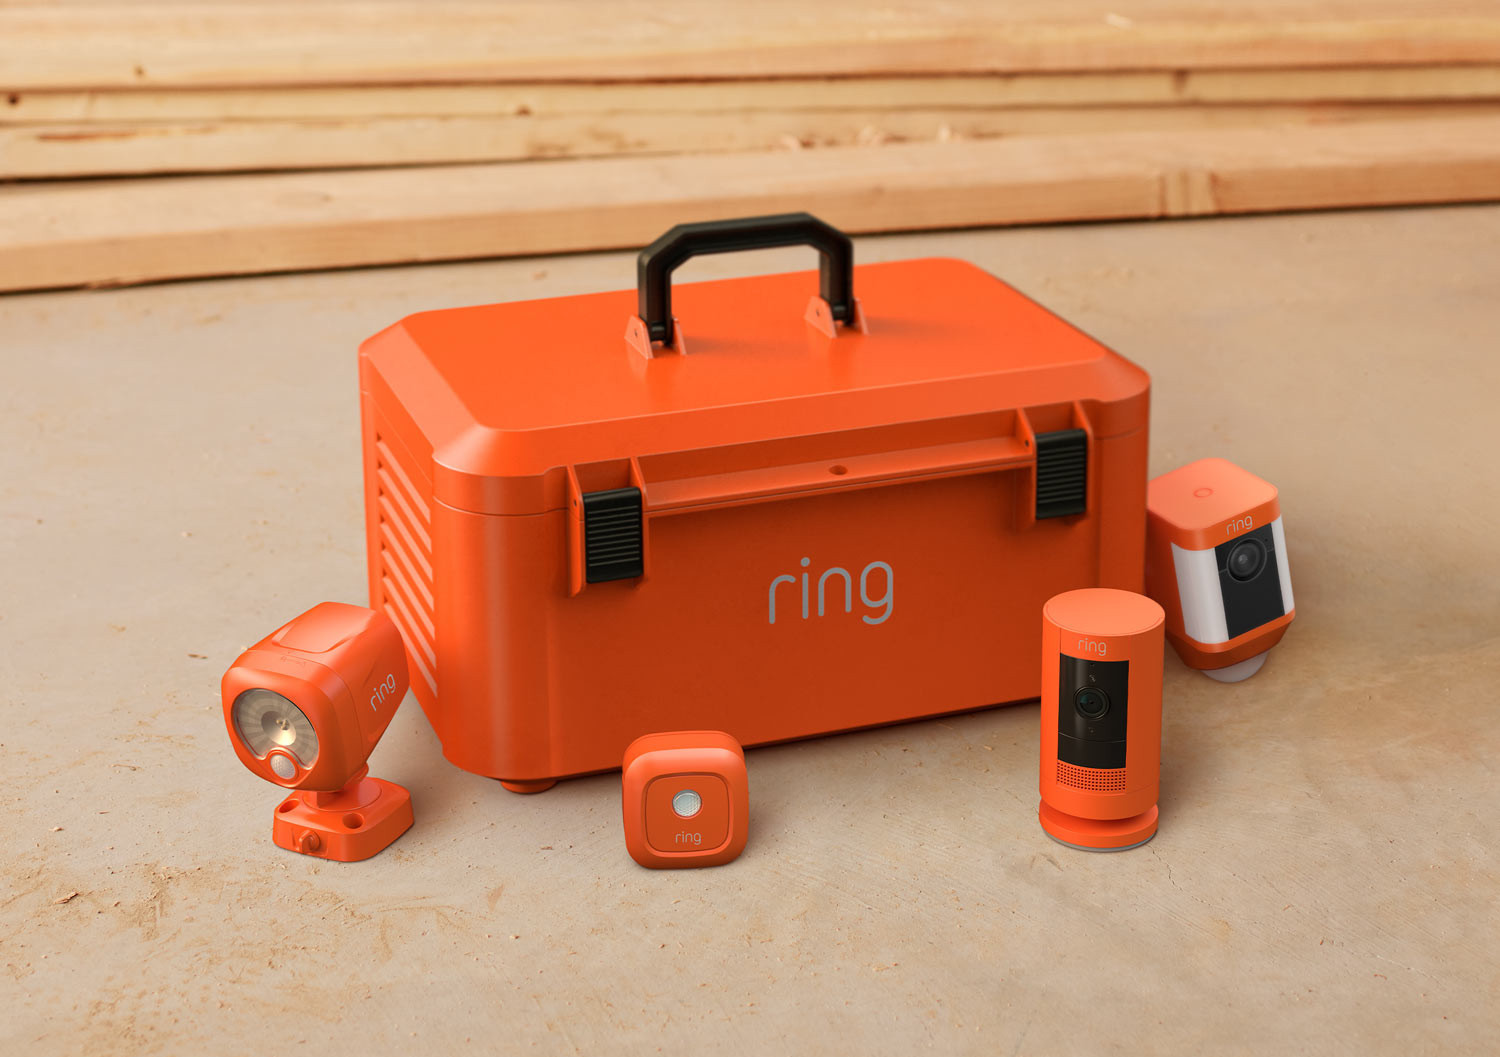 """Ring Launches """"Virtual Security Guard"""", New Pro Alarm System and Smarter Motion Alerts, Including Package Delivery – TechCrunch"""